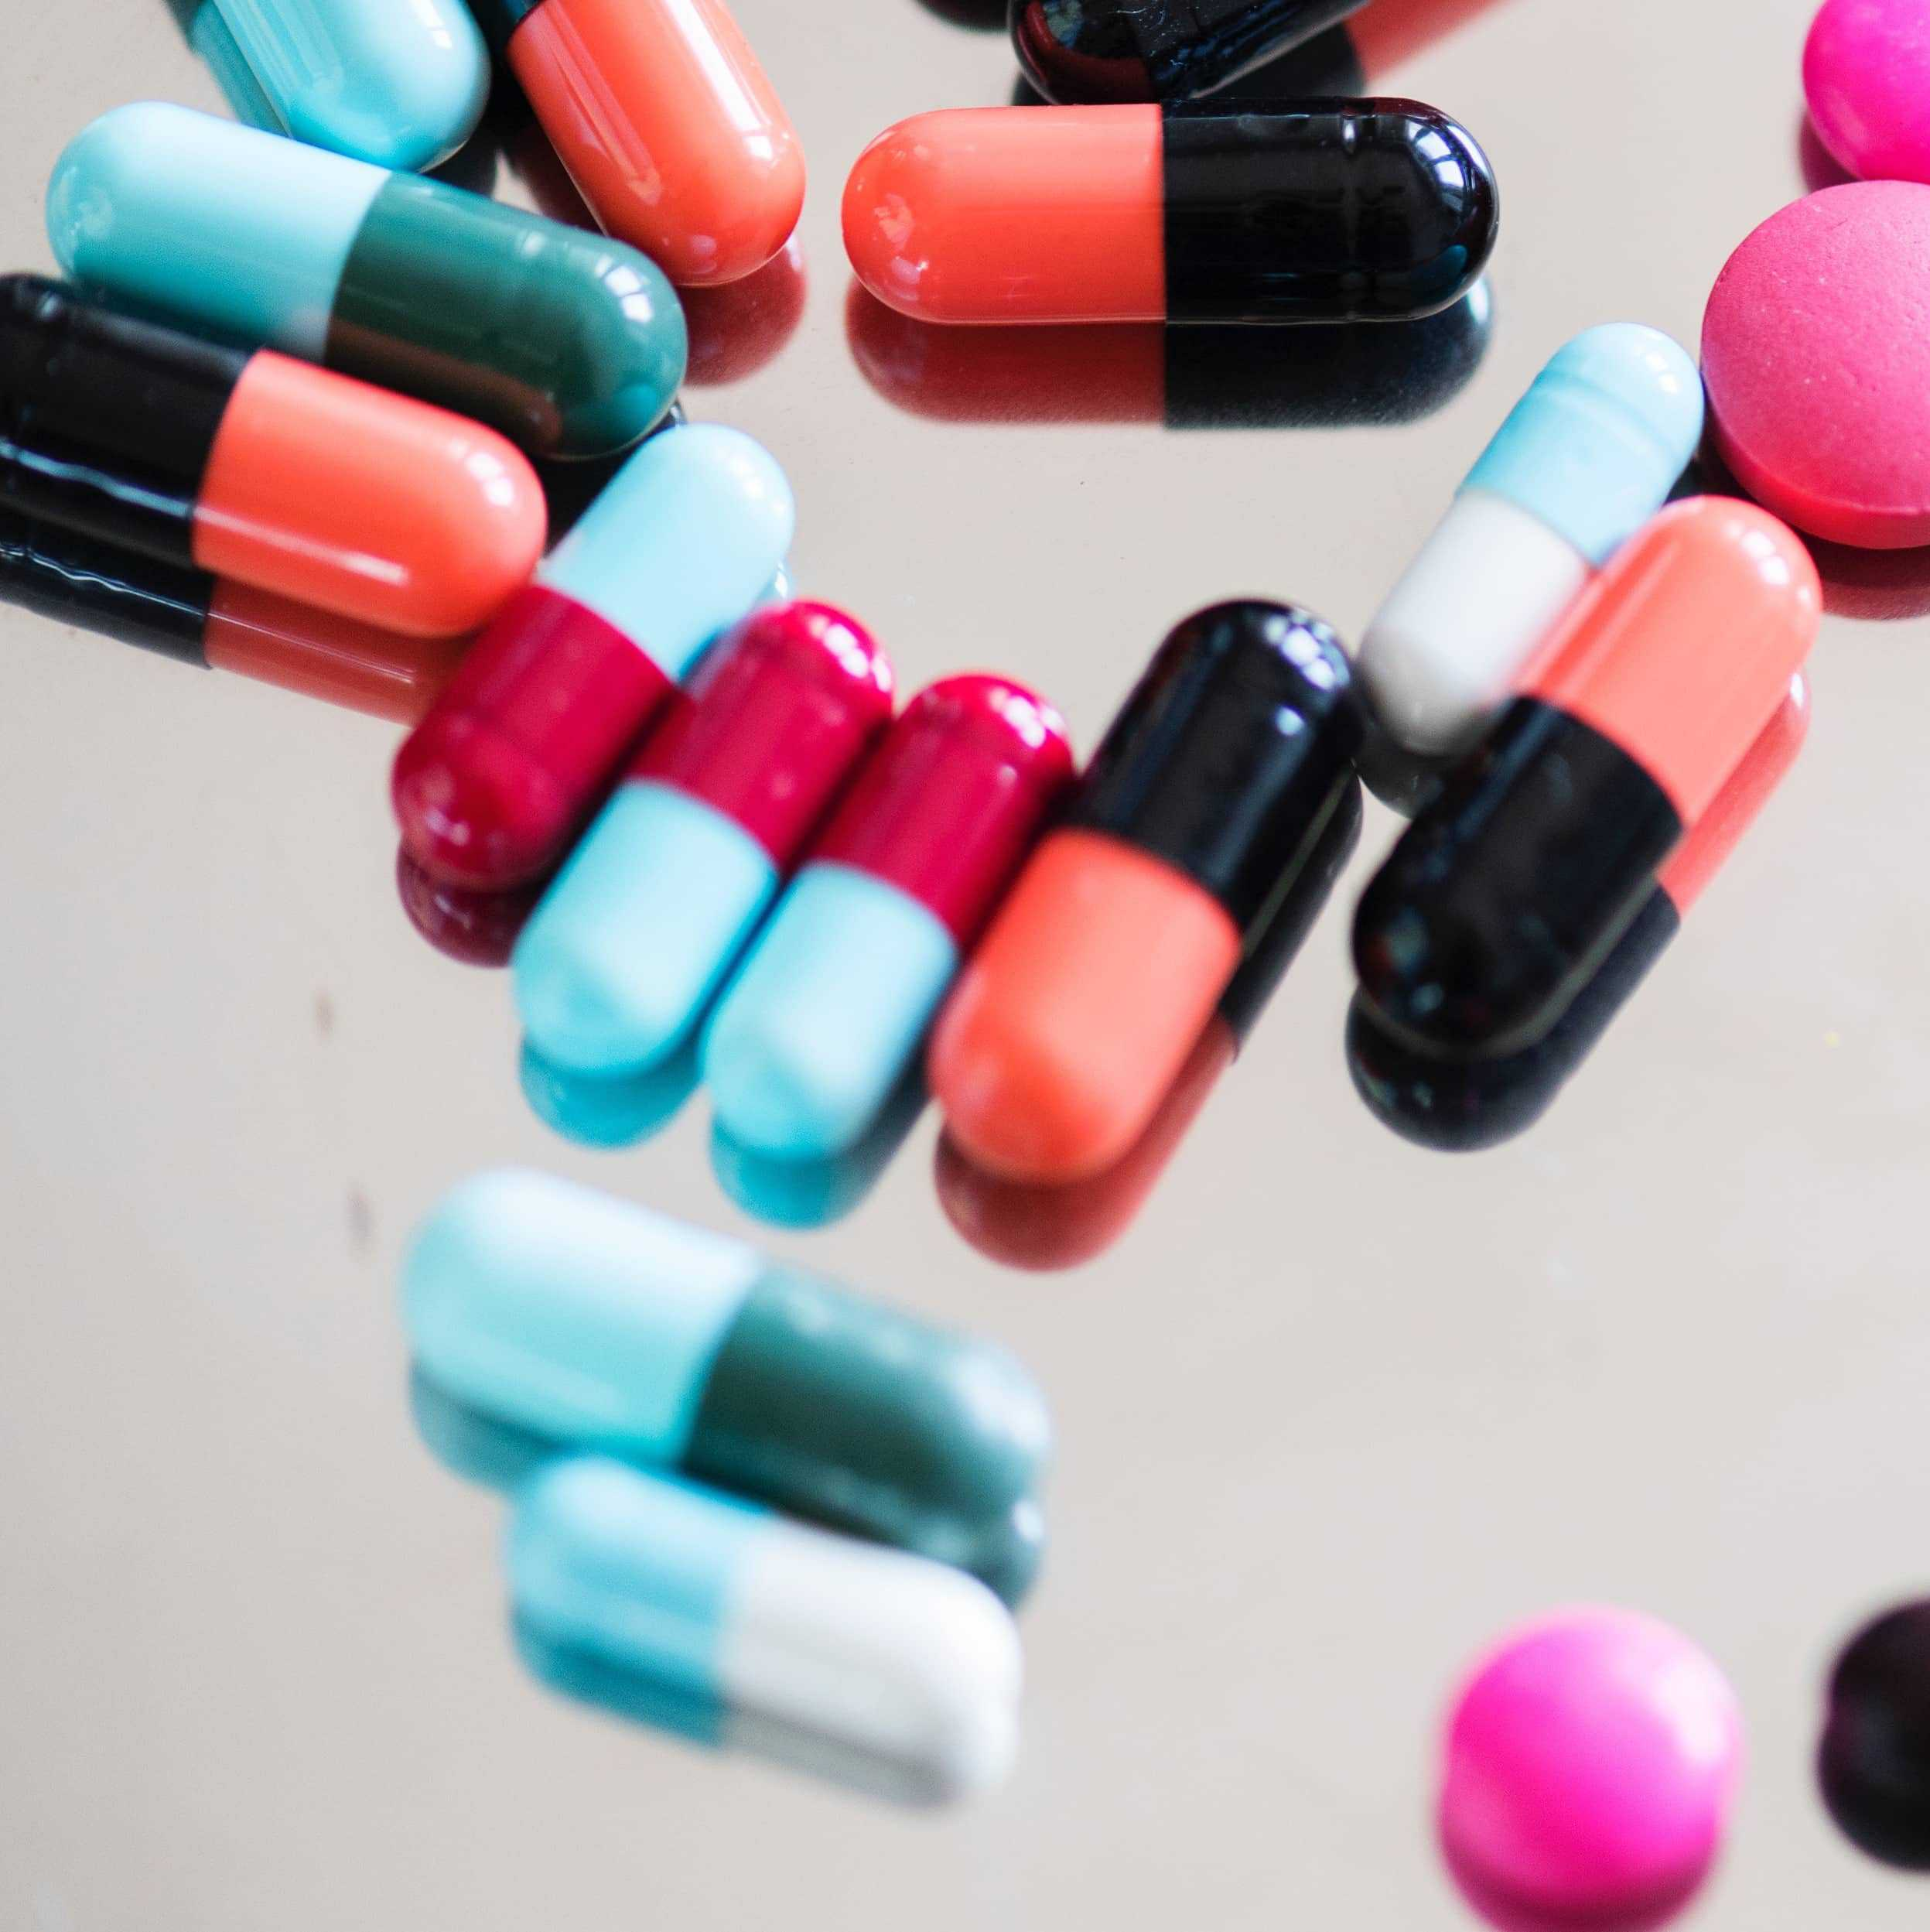 Medicines provided relief during home Detox from heroin abuse